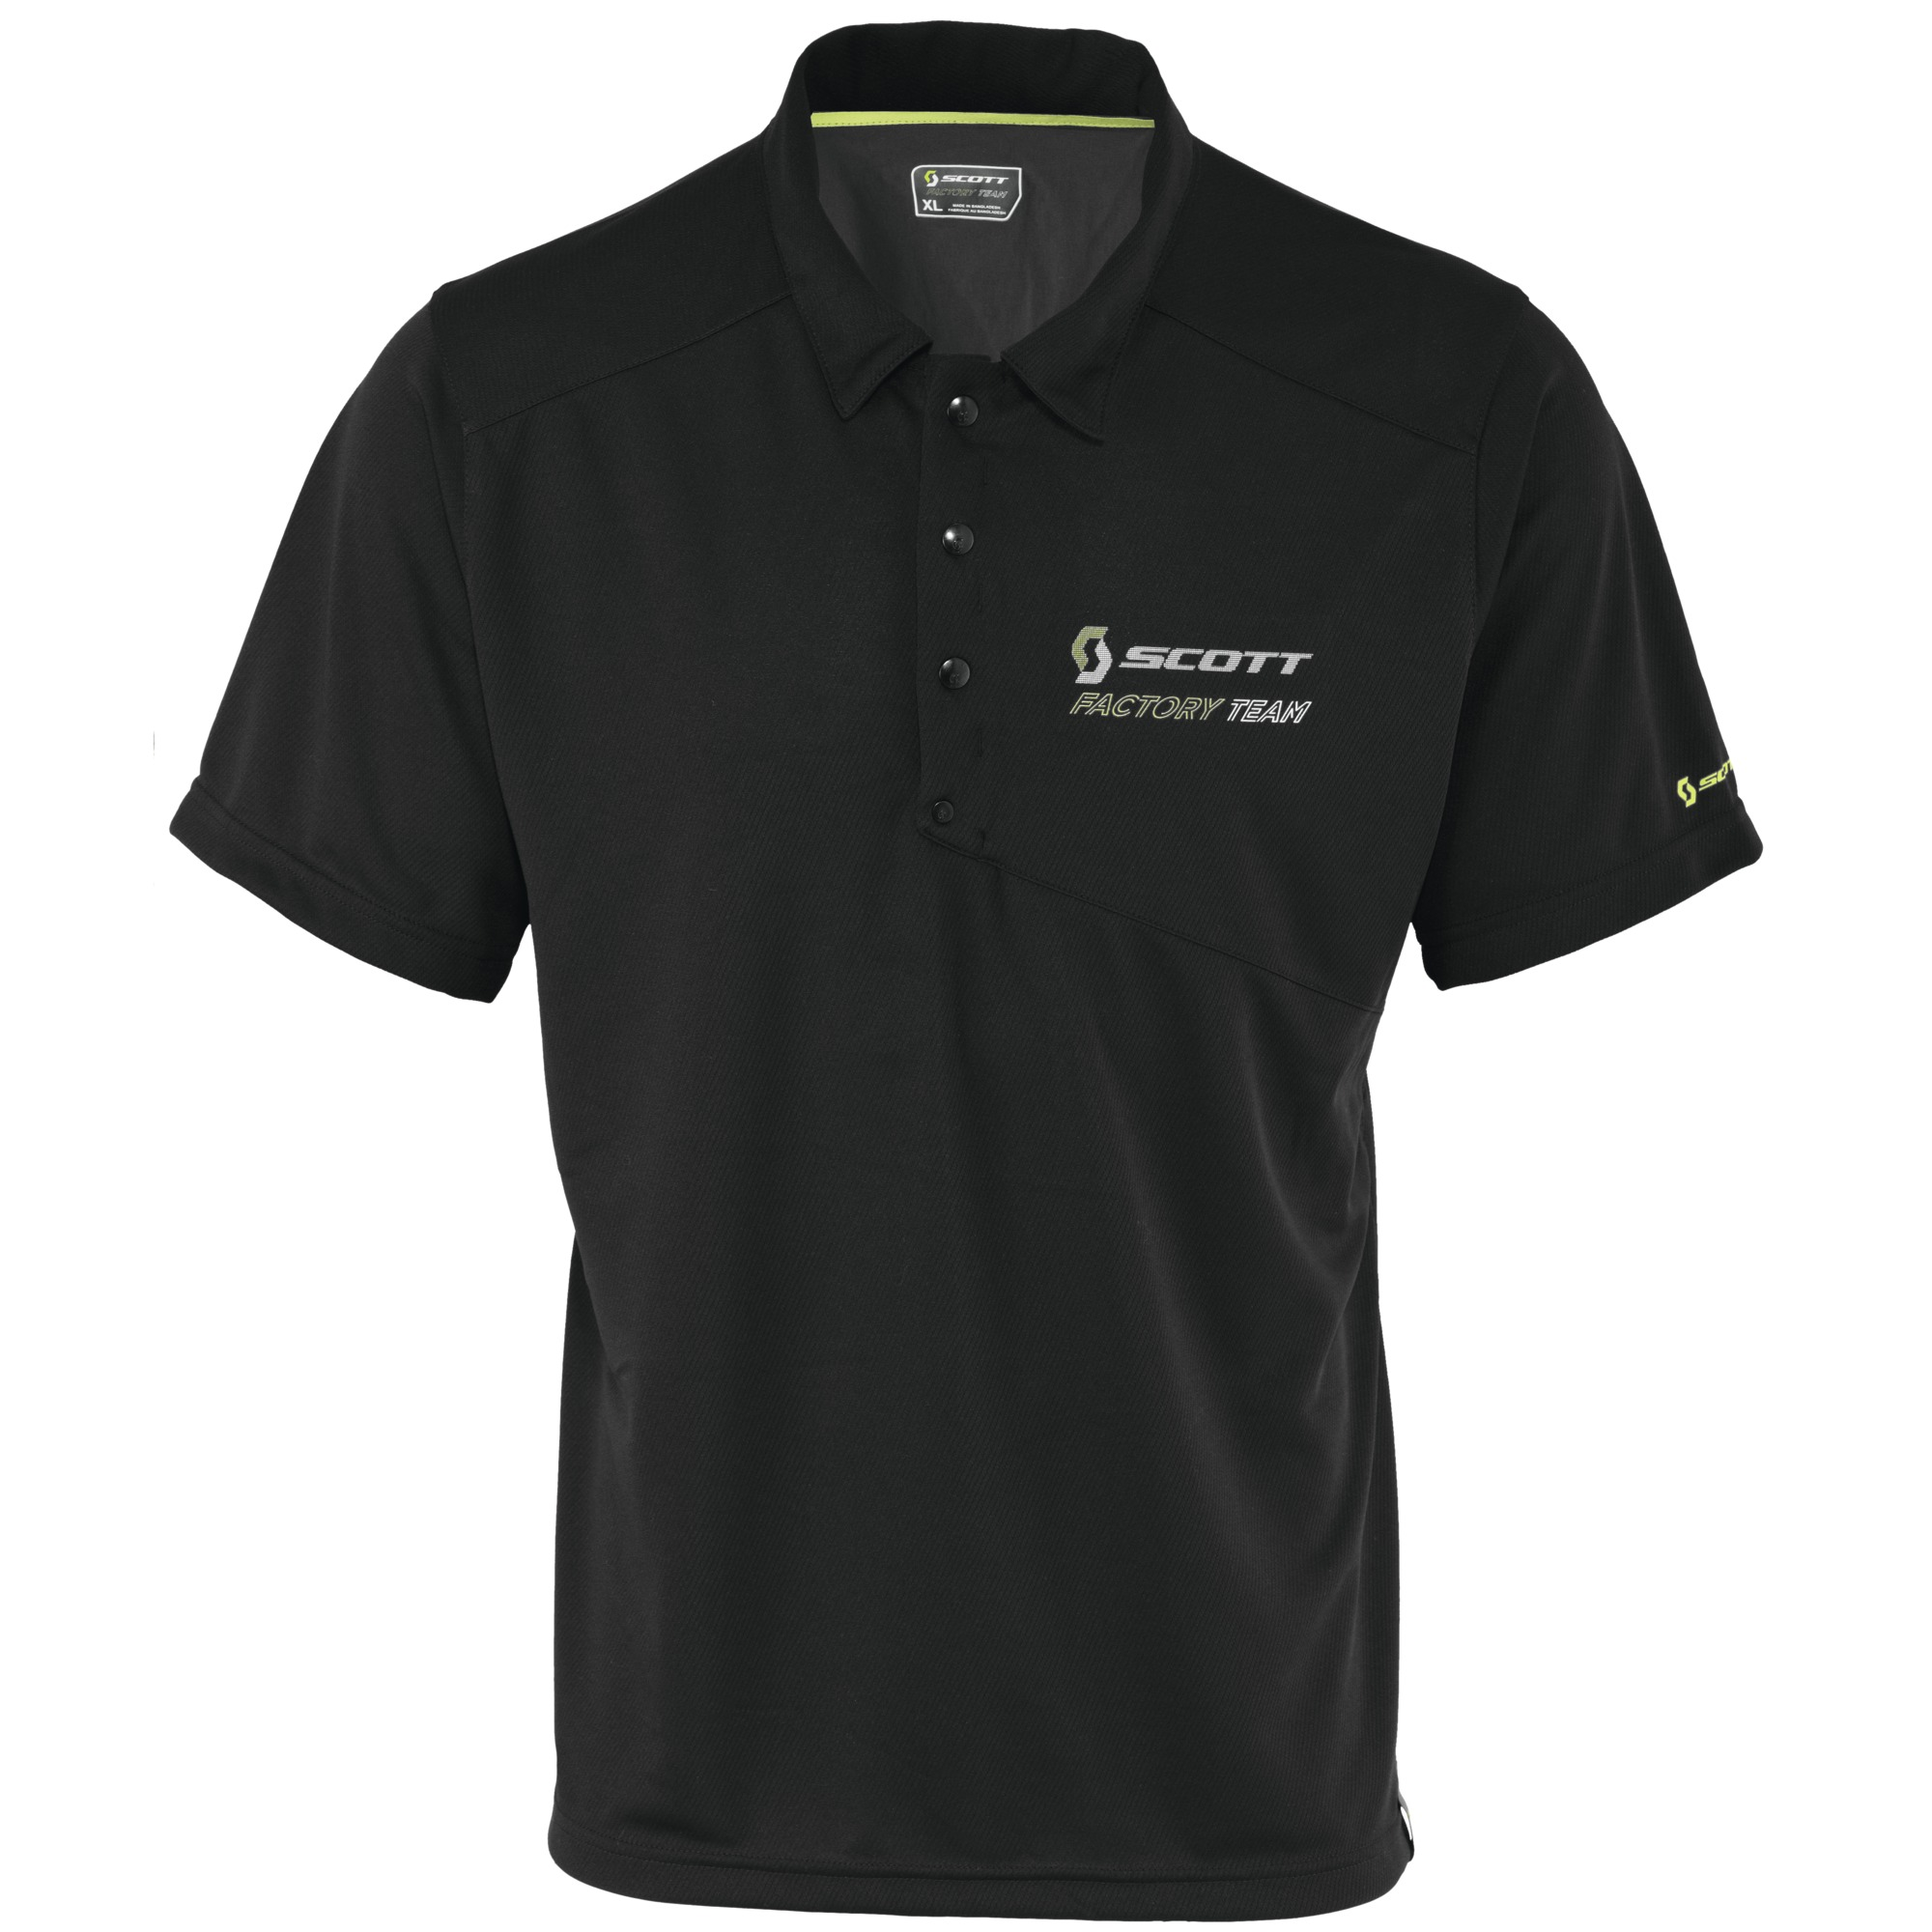 SCOTT FACTORY TEAM S/SL POLO